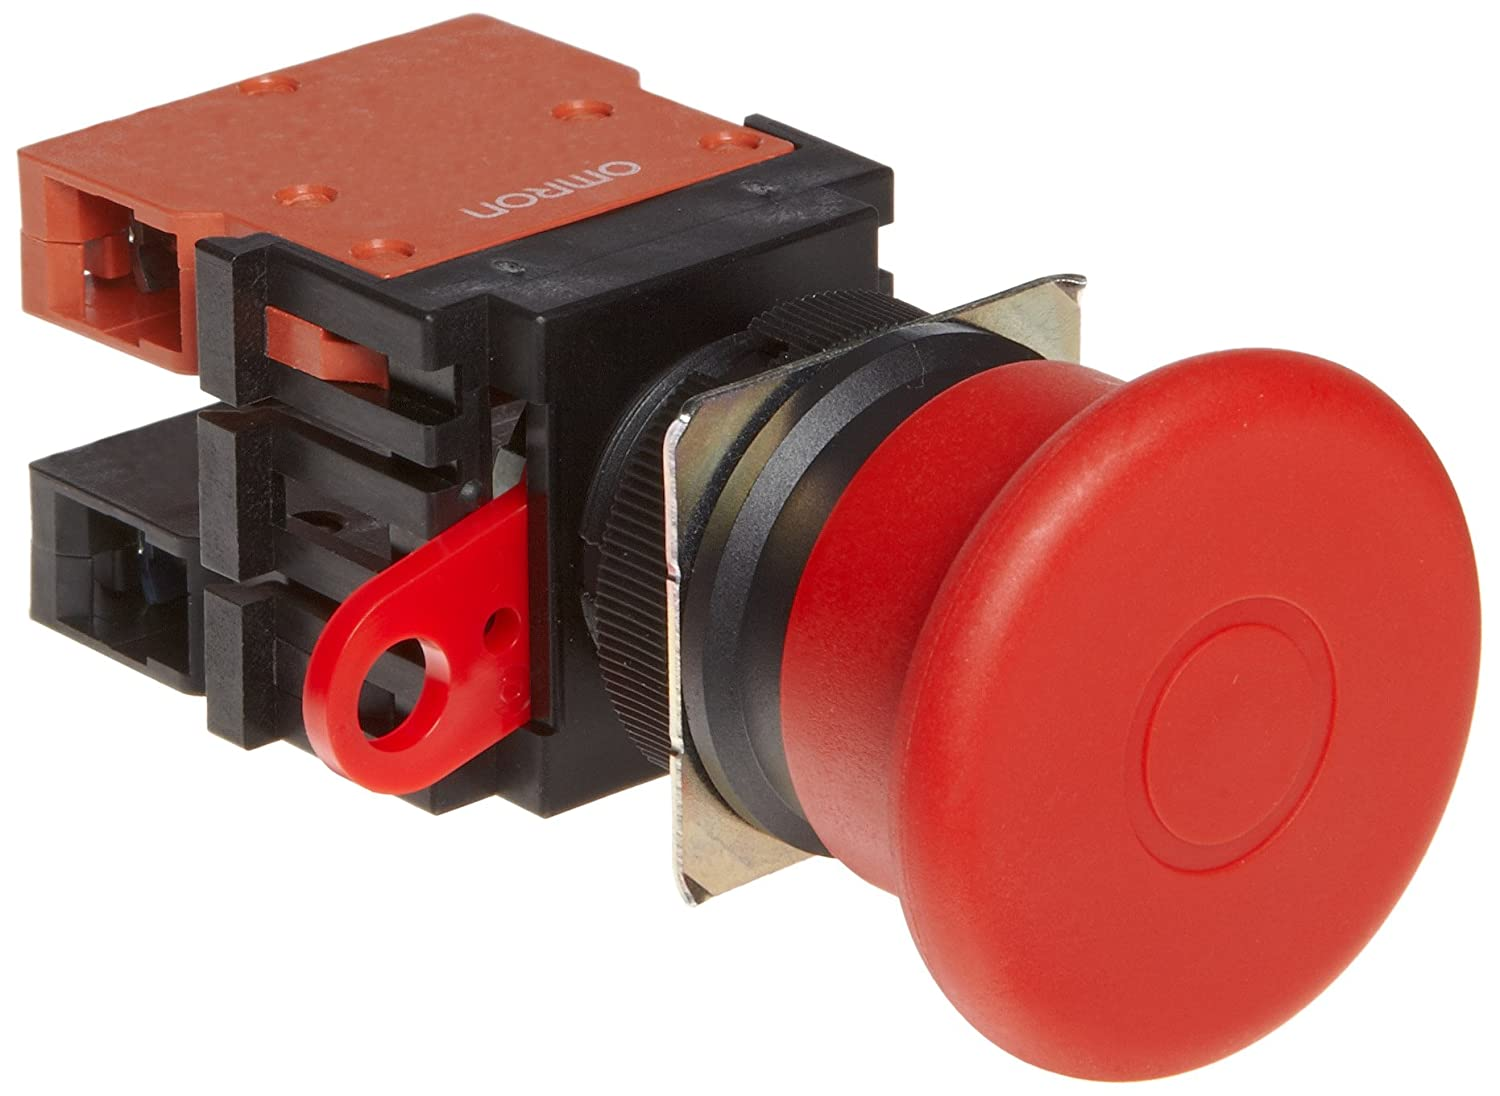 Push-Lock Turn-Reset Operation 40mm Diameter Omron A22E-MP-02 Emergency Stop Operation Unit and Switch Double Pole Single Throw Normally Closed Contacts IP65 Oil-Resistant Non-Lighted Screw Terminal Red